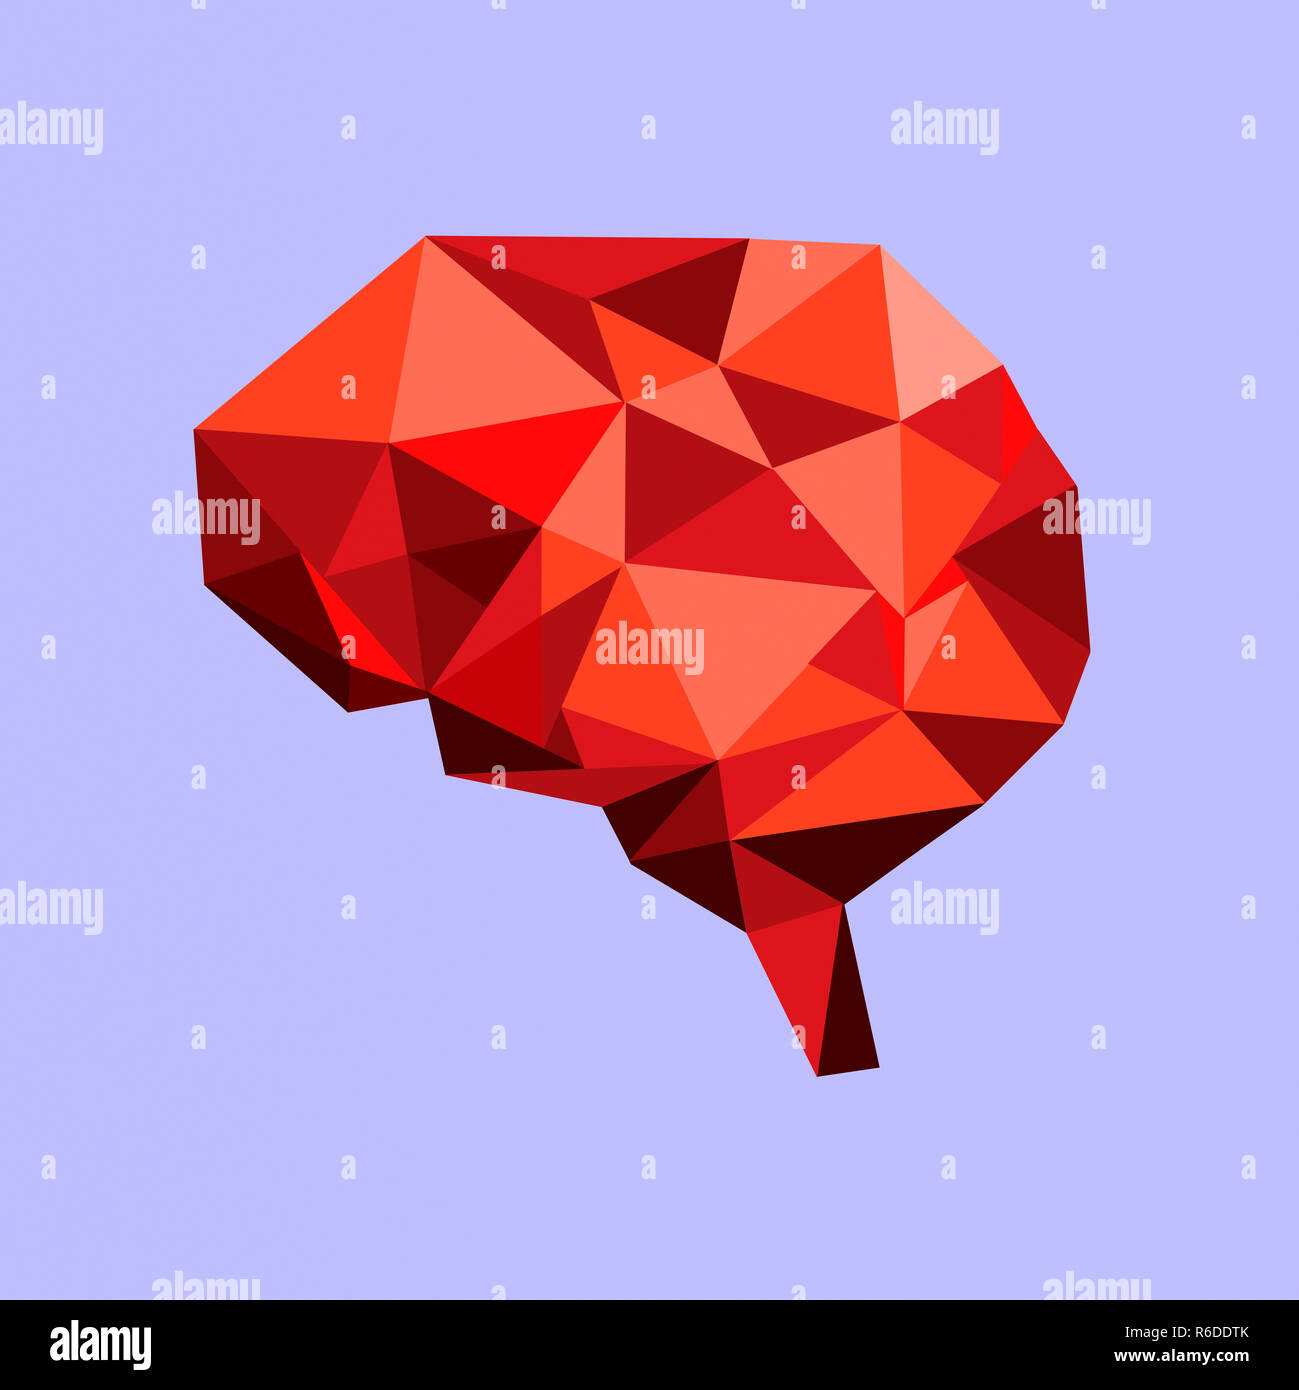 Low poly human brain made from red angular geometric shapes - Stock Image